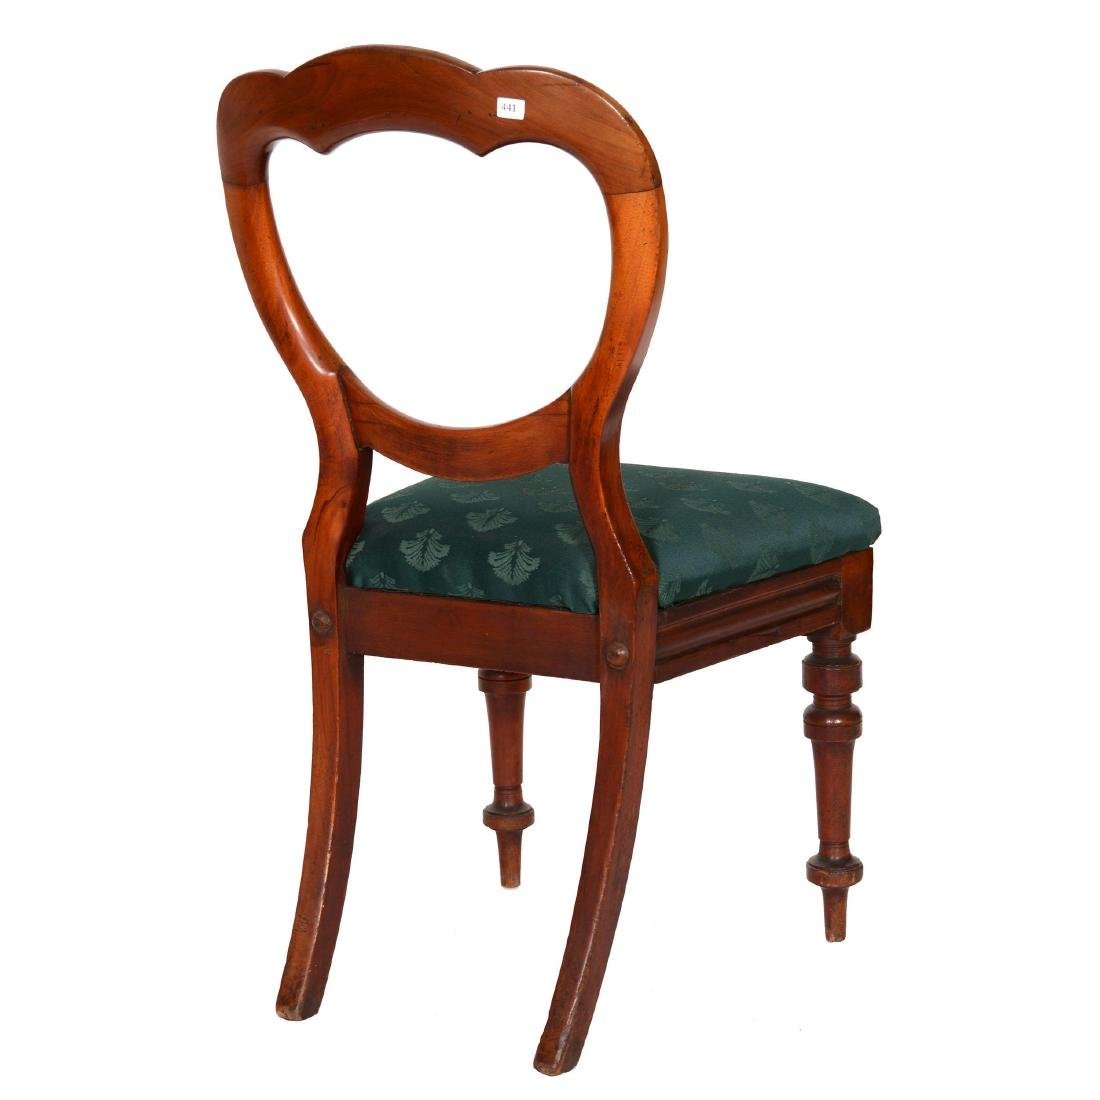 Victorian Carved Walnut Open Back Parlor Chair - 2